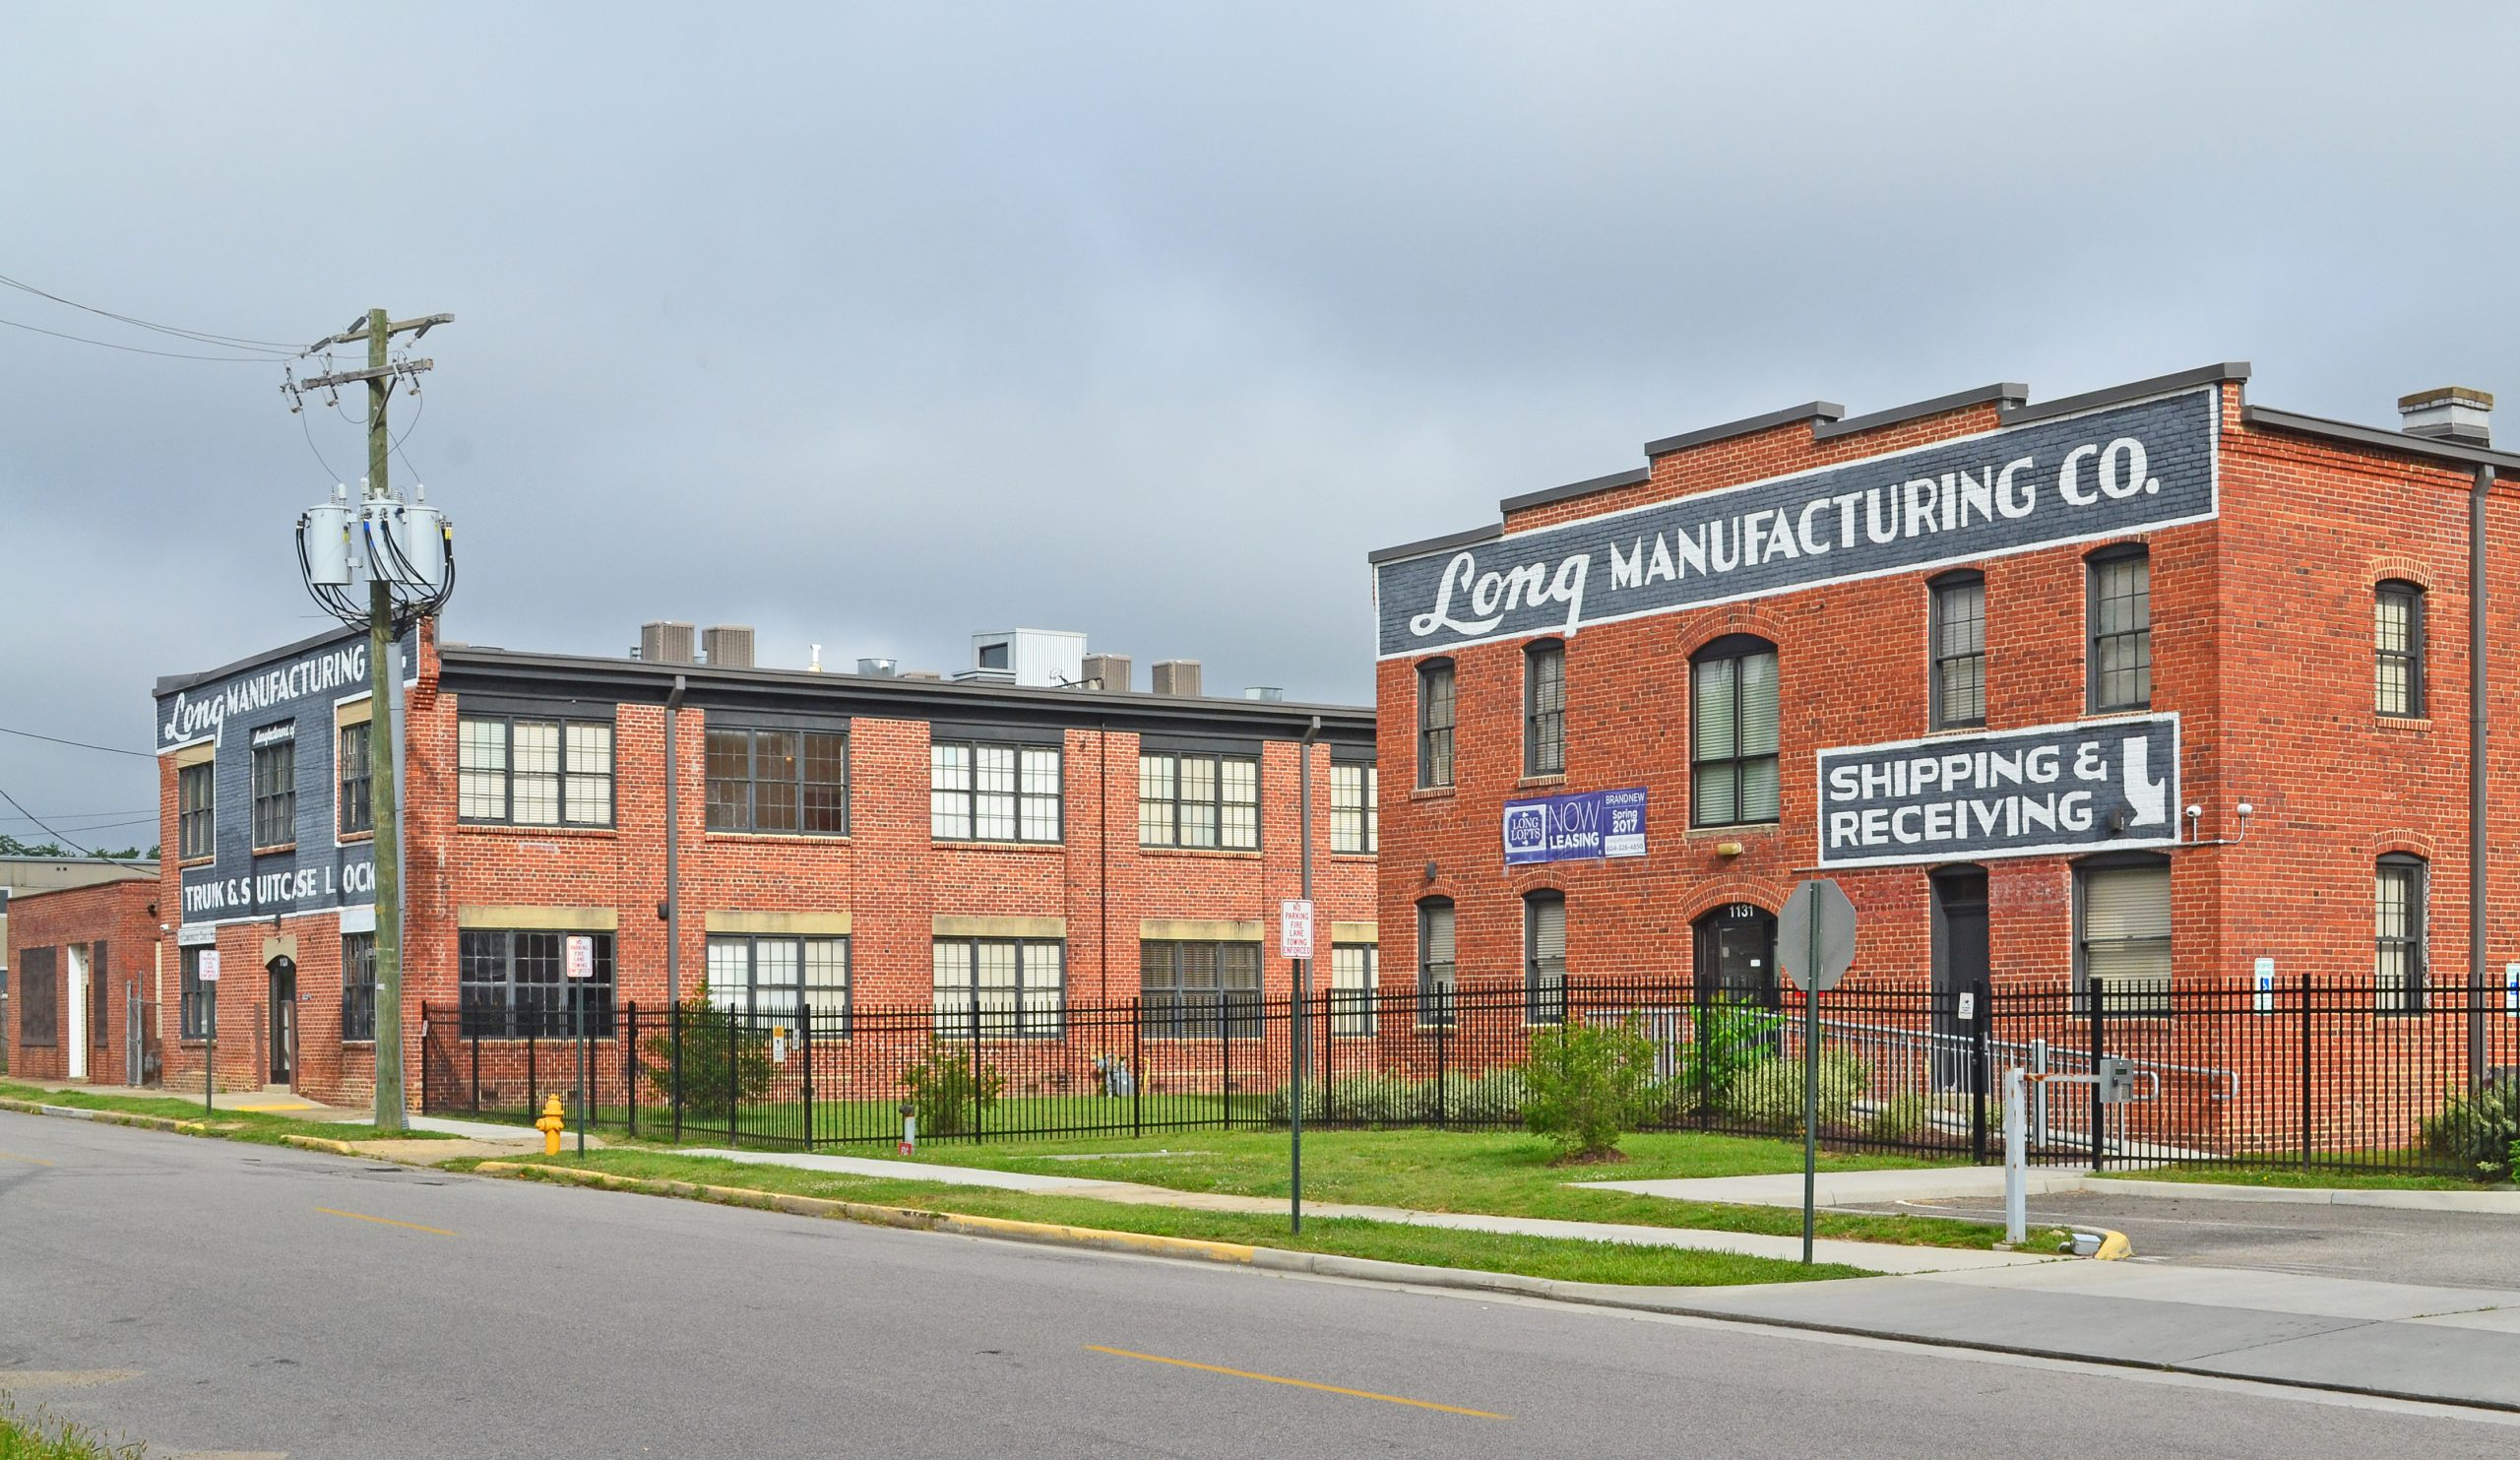 Commerce Street Industrial Historic District